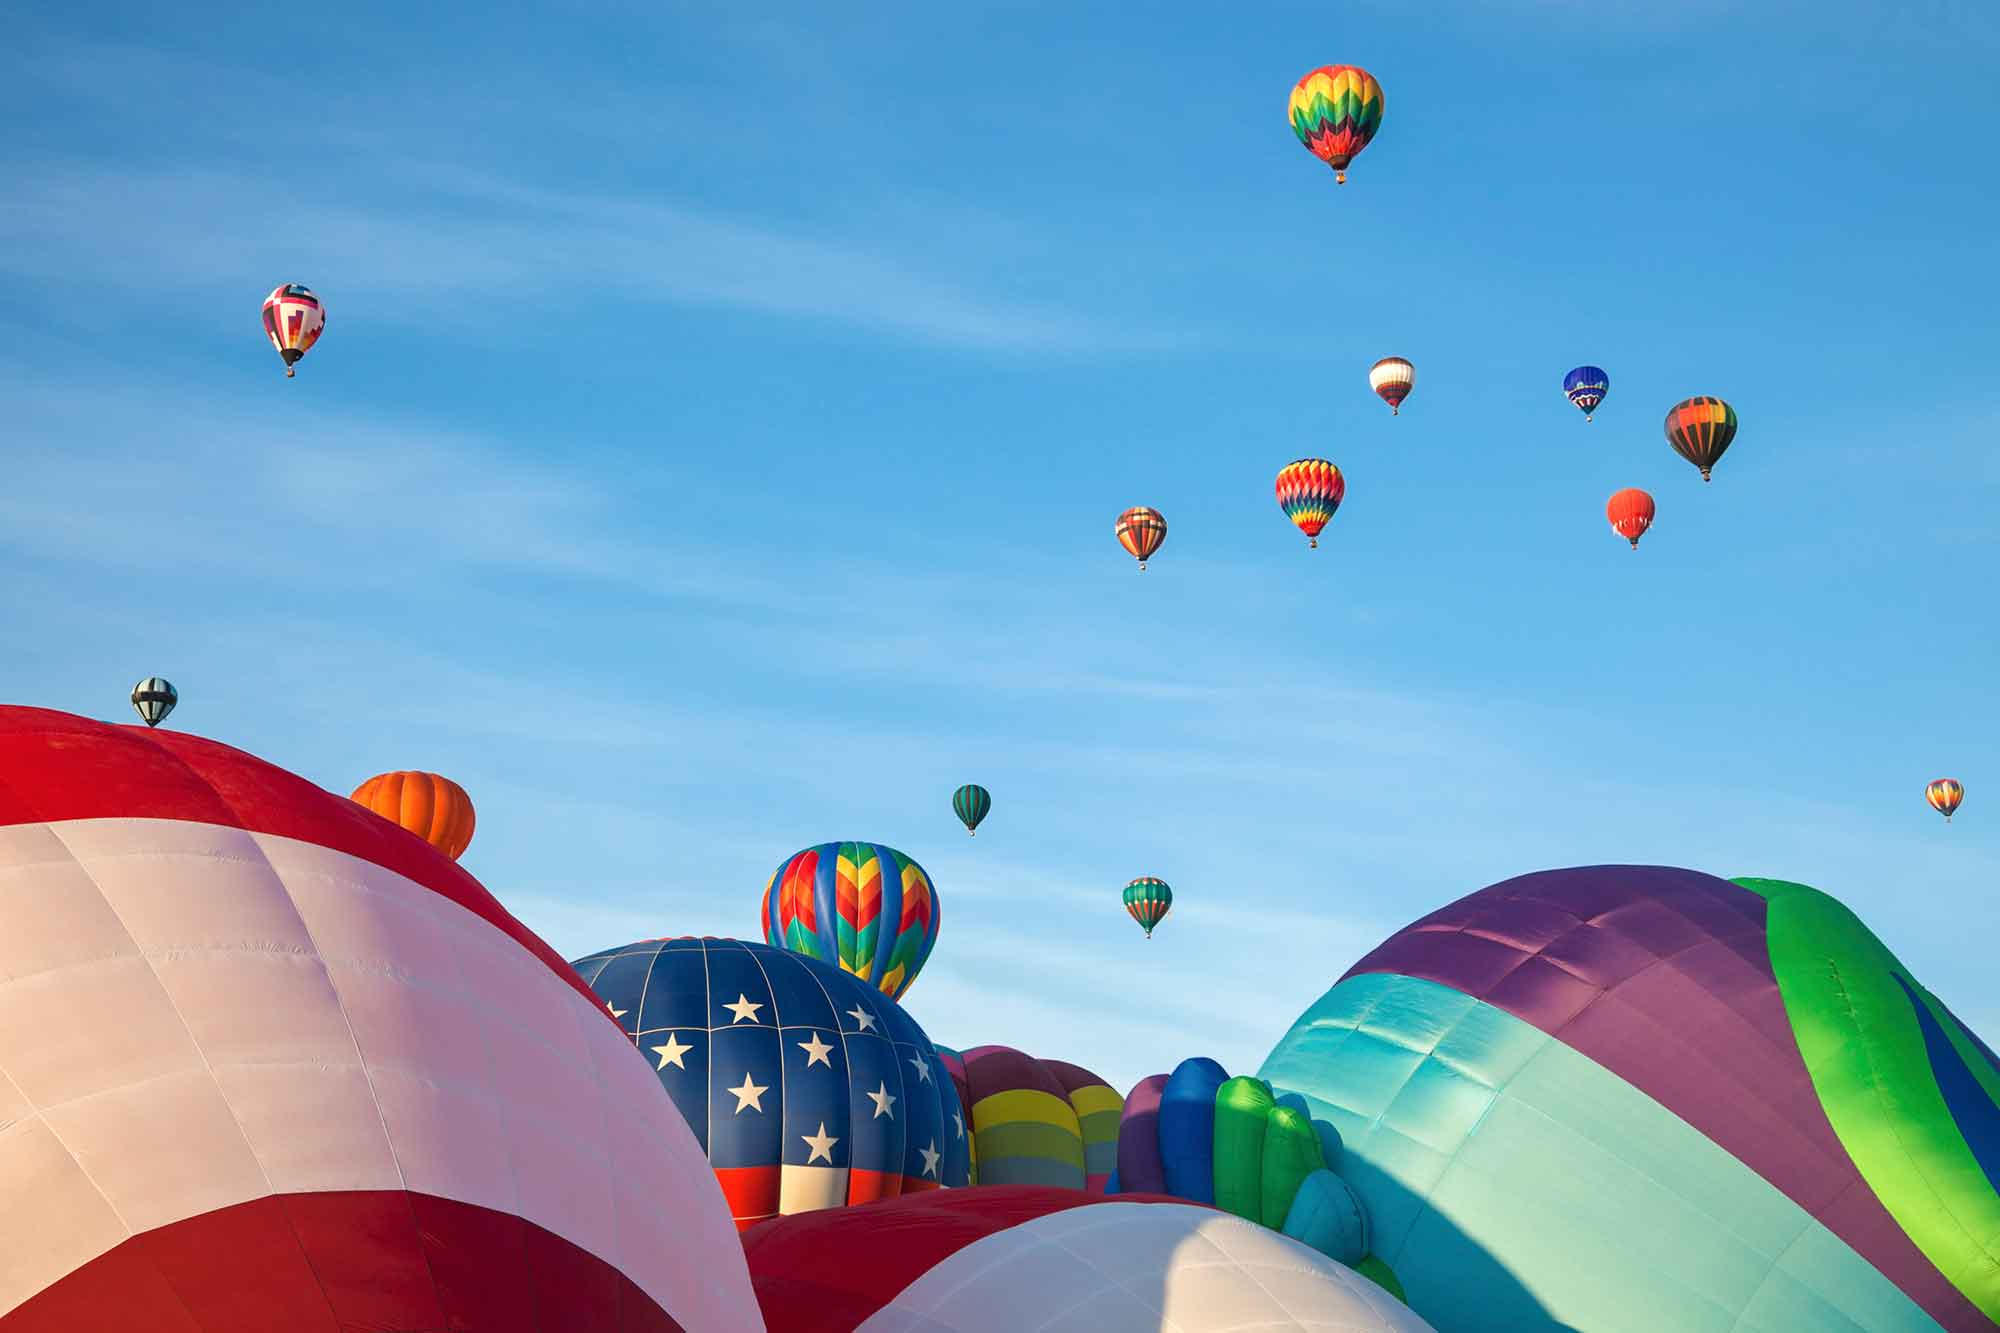 A picture of the hot air balloon fiesta In Albuquerque.